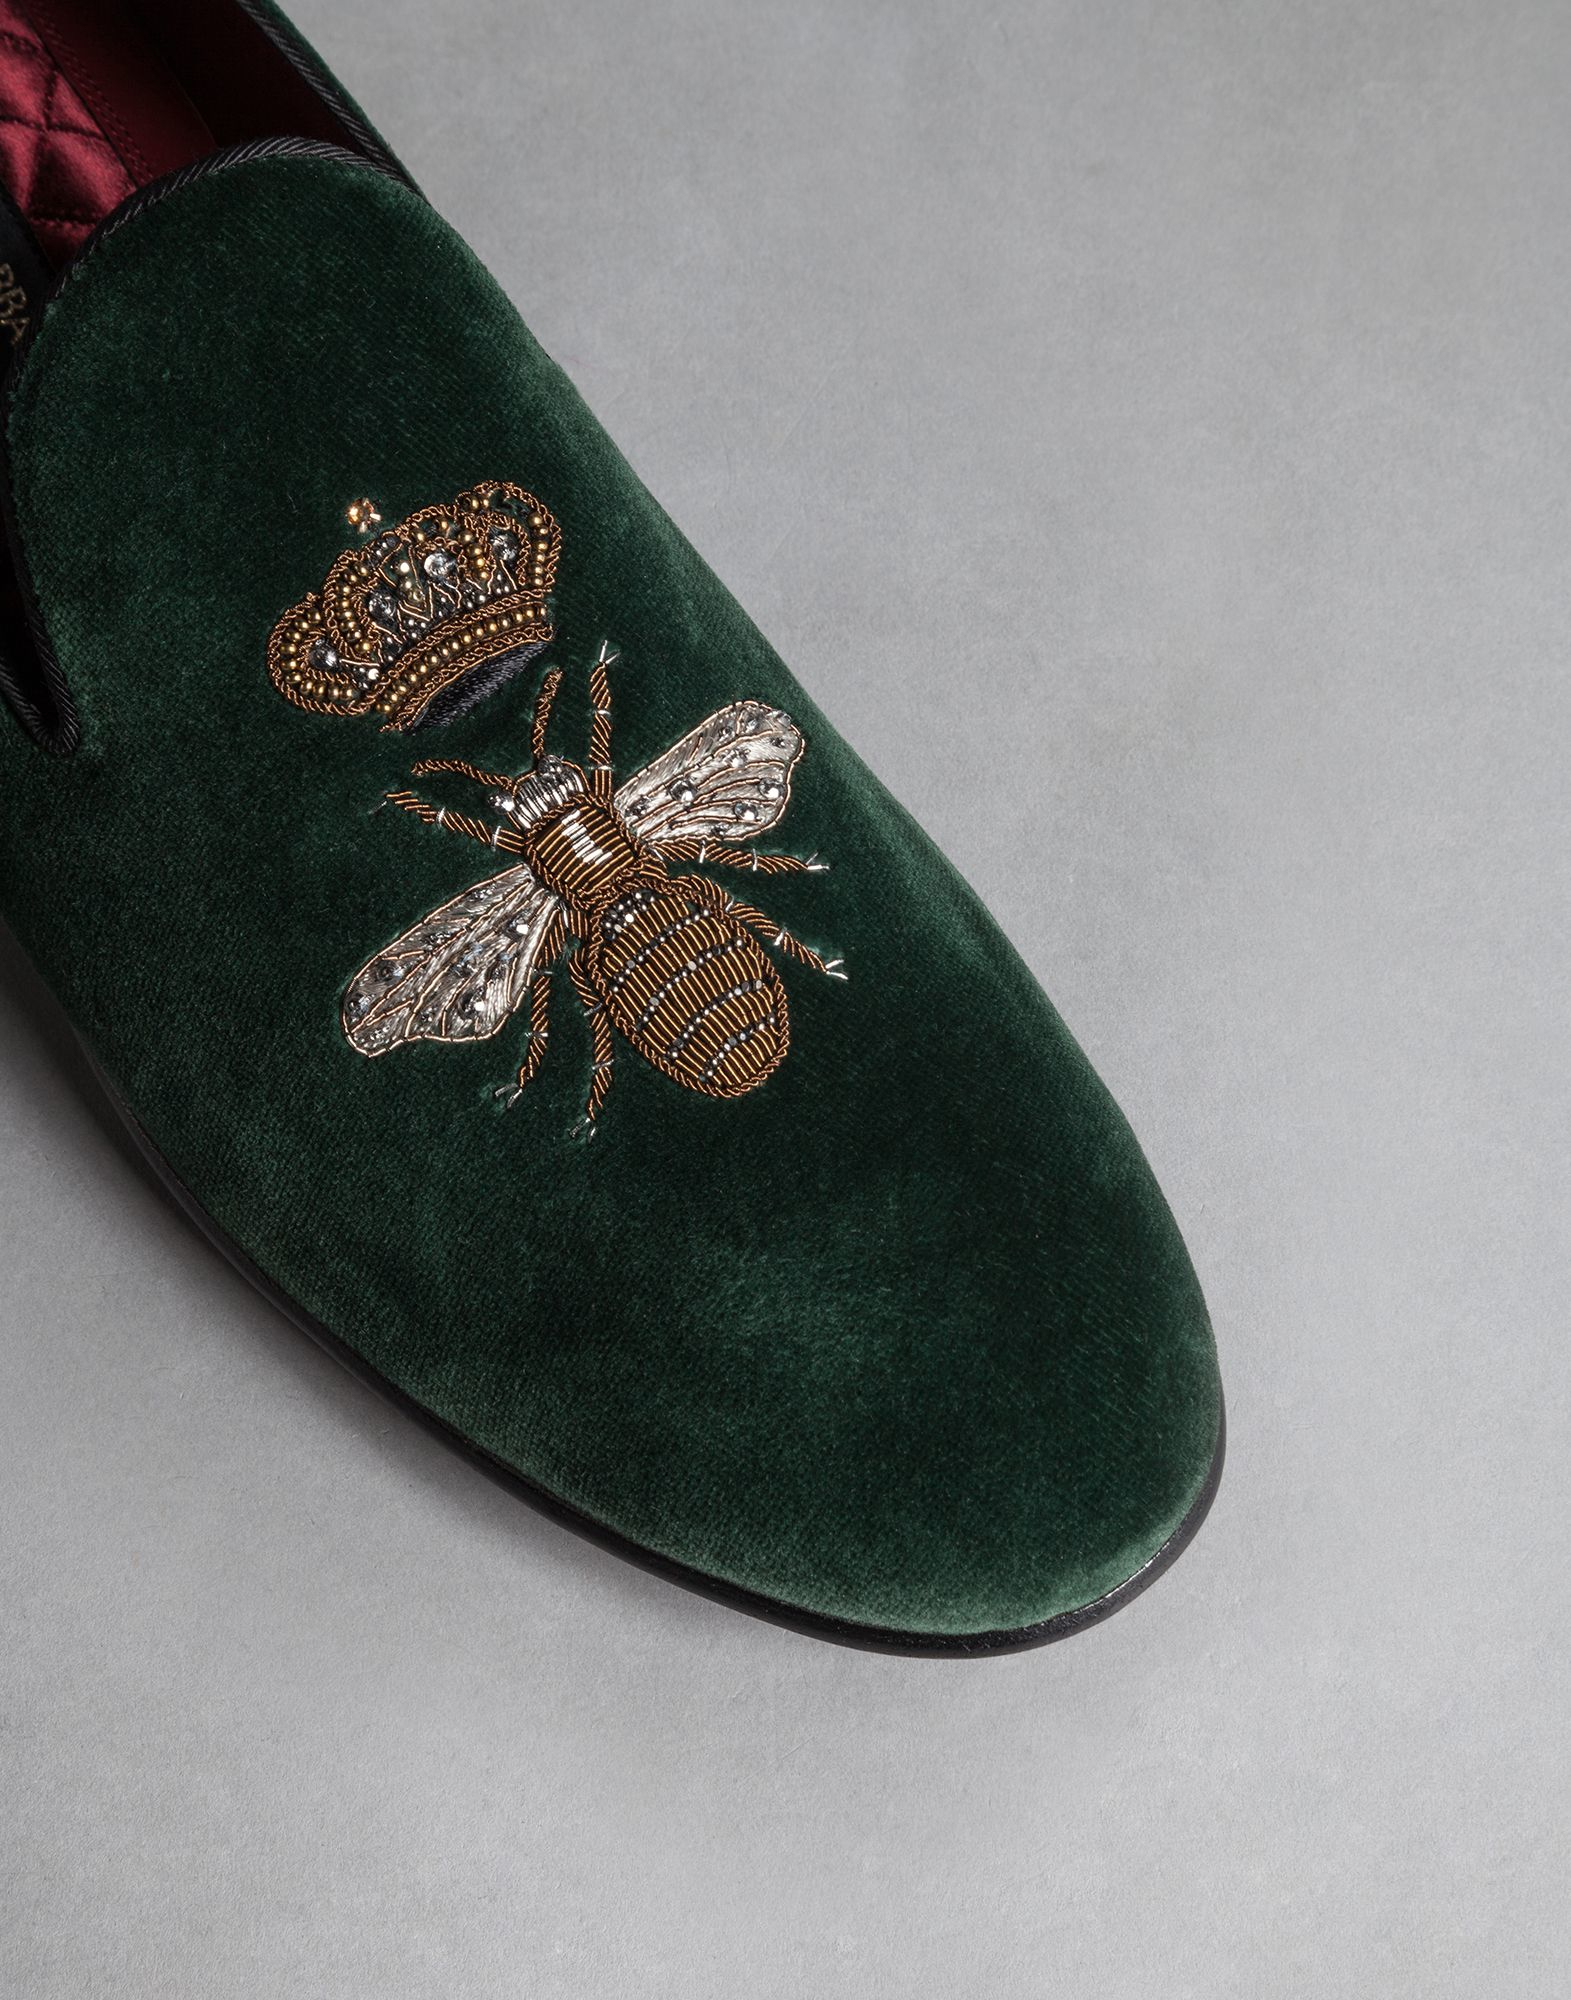 77a4bf249c Dolce & Gabbana Queen Bee Embroidered Velvet Milano Slippers in ...